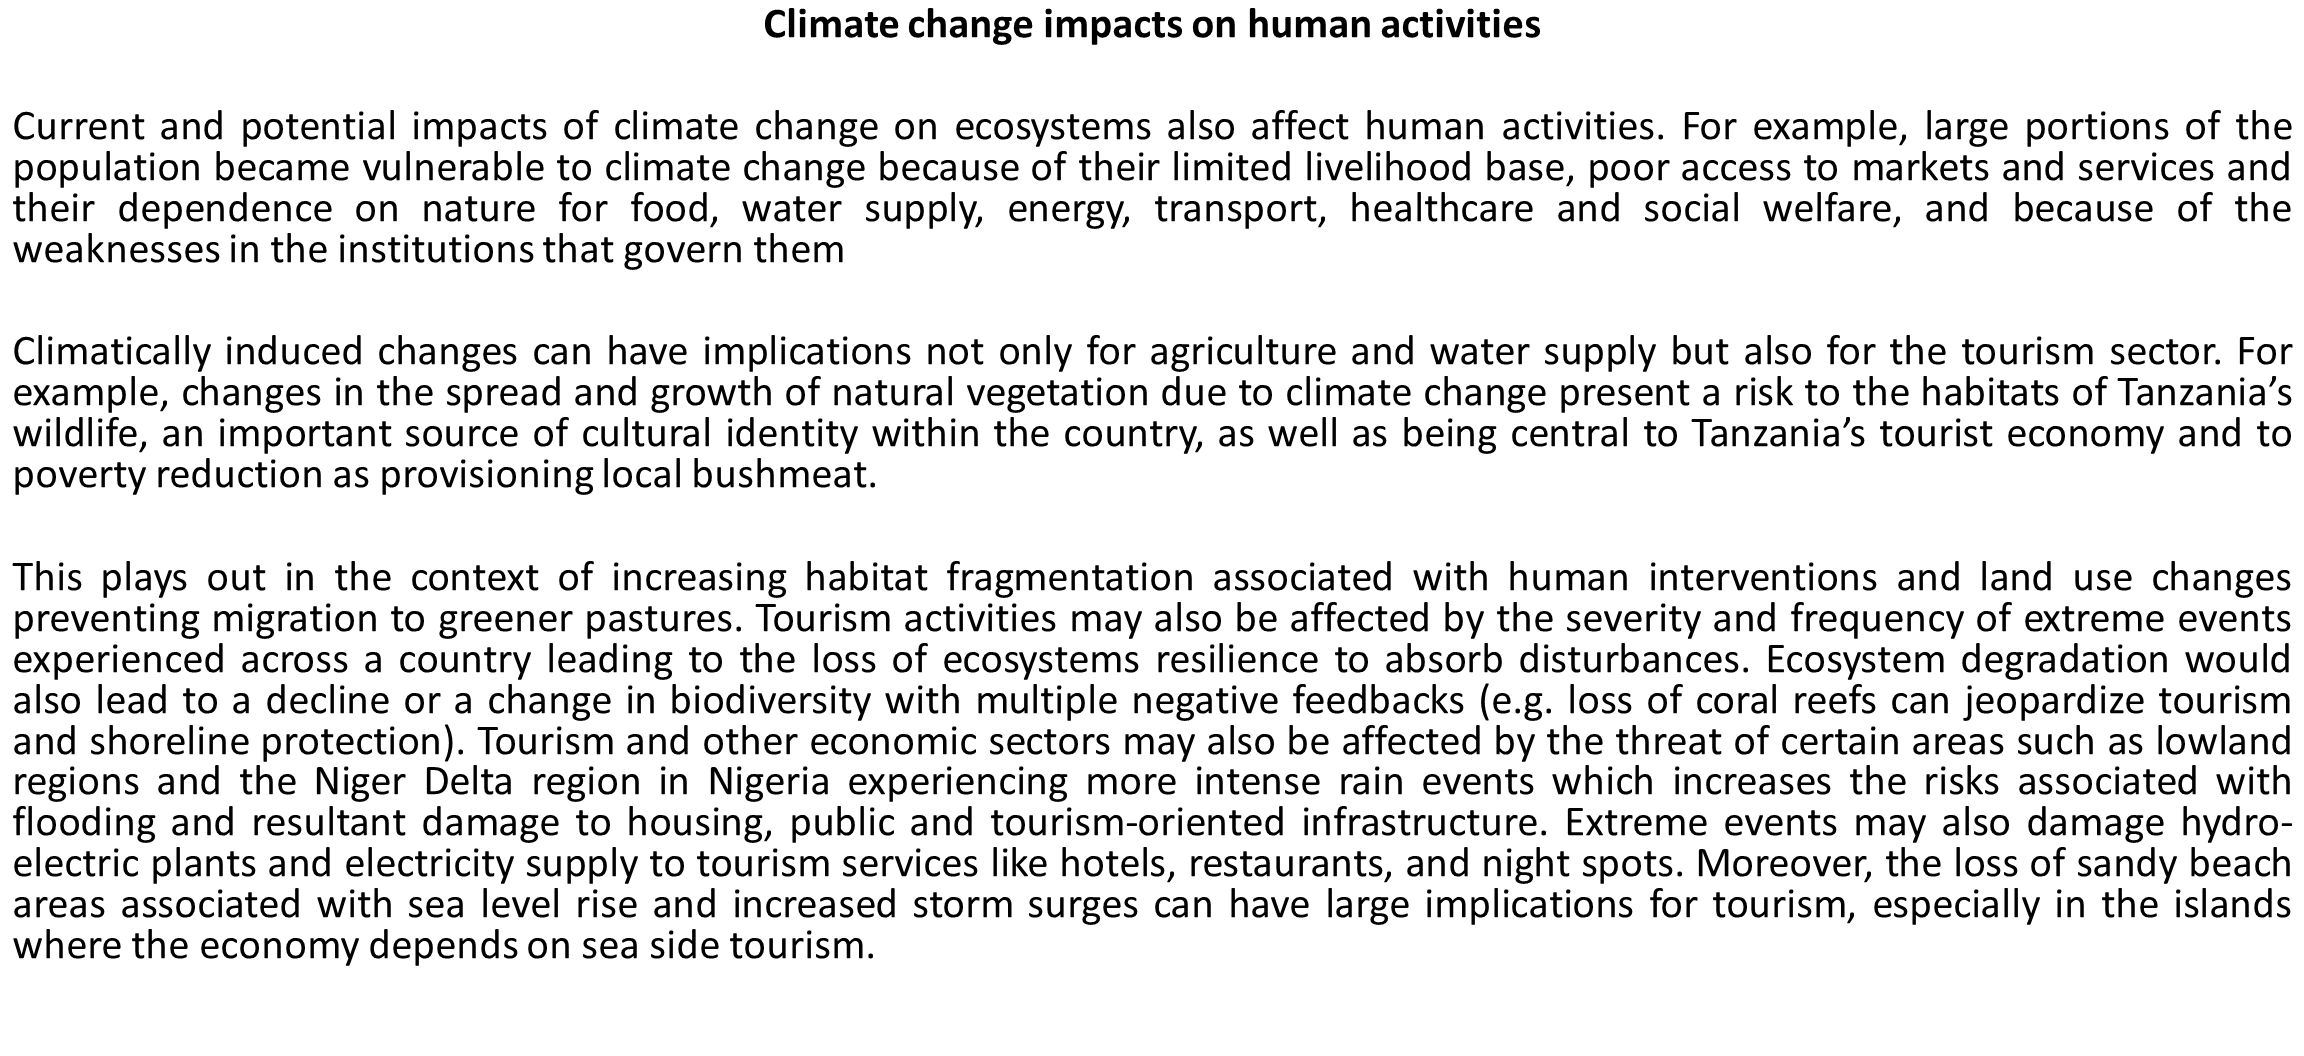 Climate change impacts on human activities